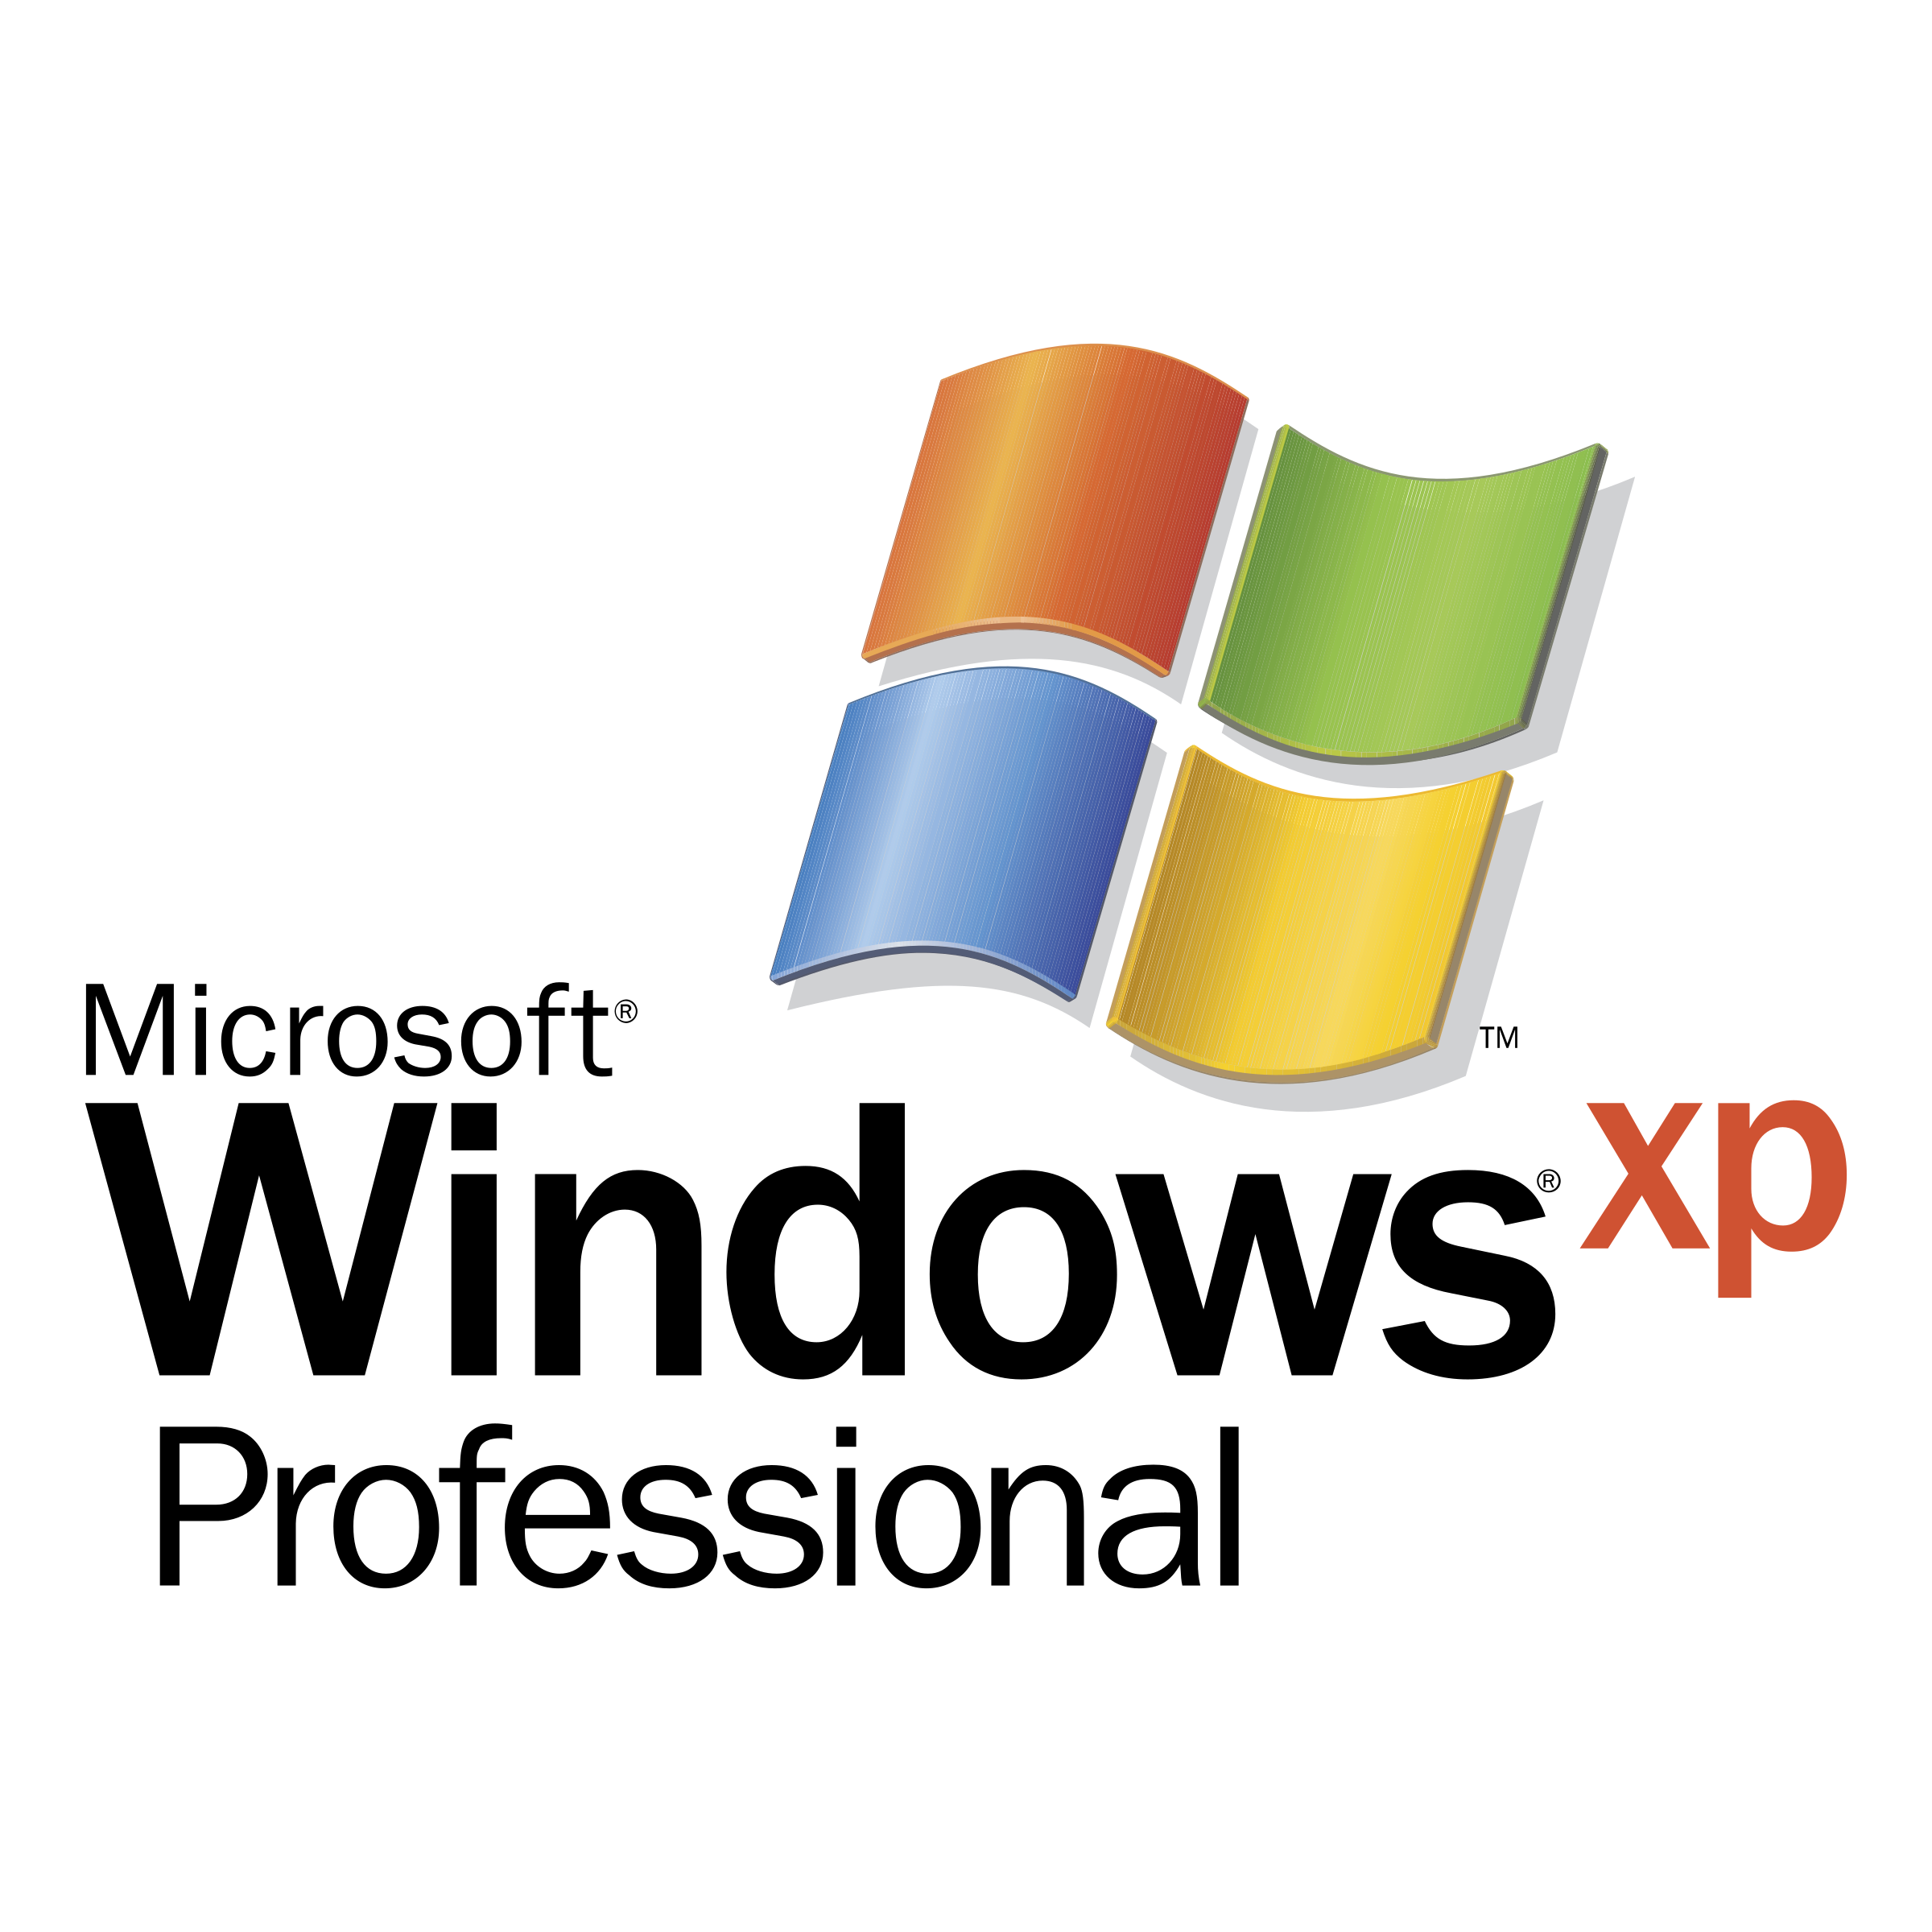 Microsoft professional logo transparent. Windows xp png